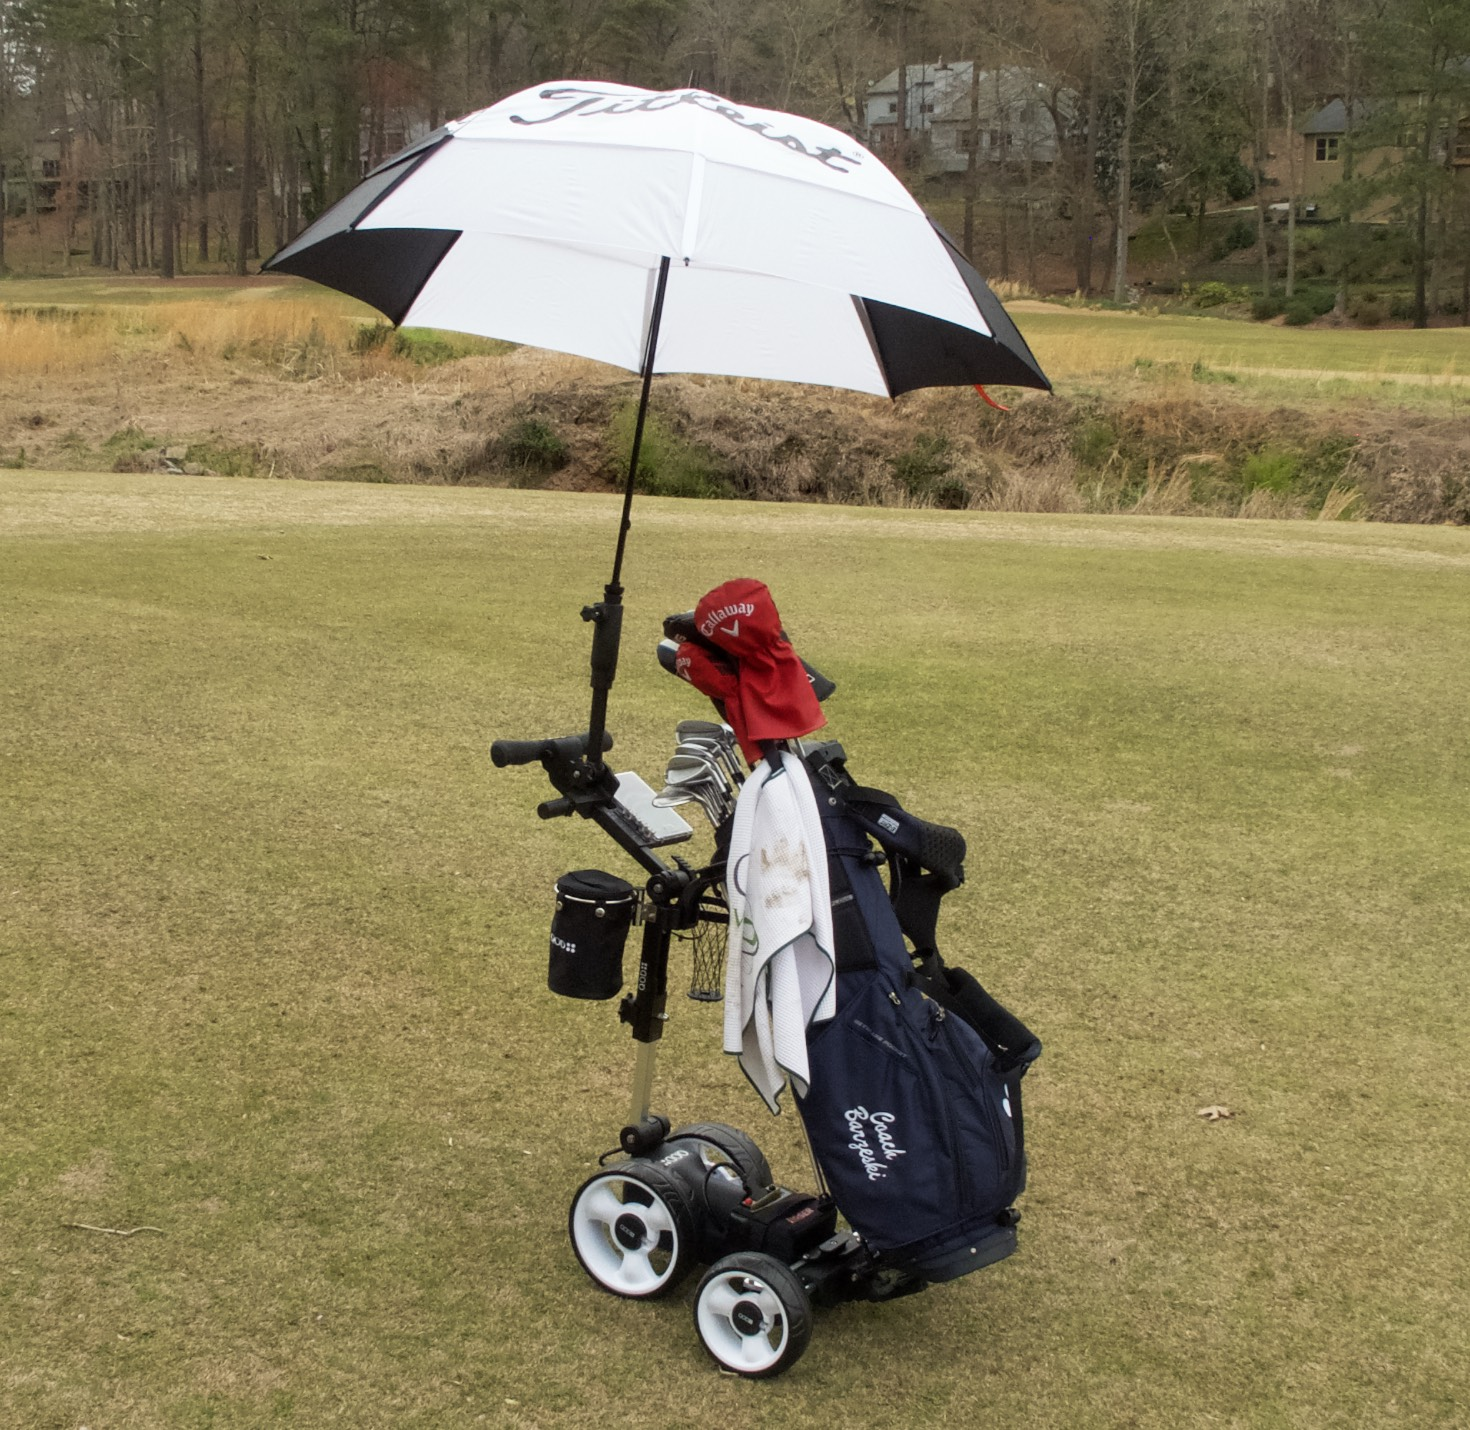 Qod Electric Golf Cart Review Accessories Hot Topics The Sand Trap